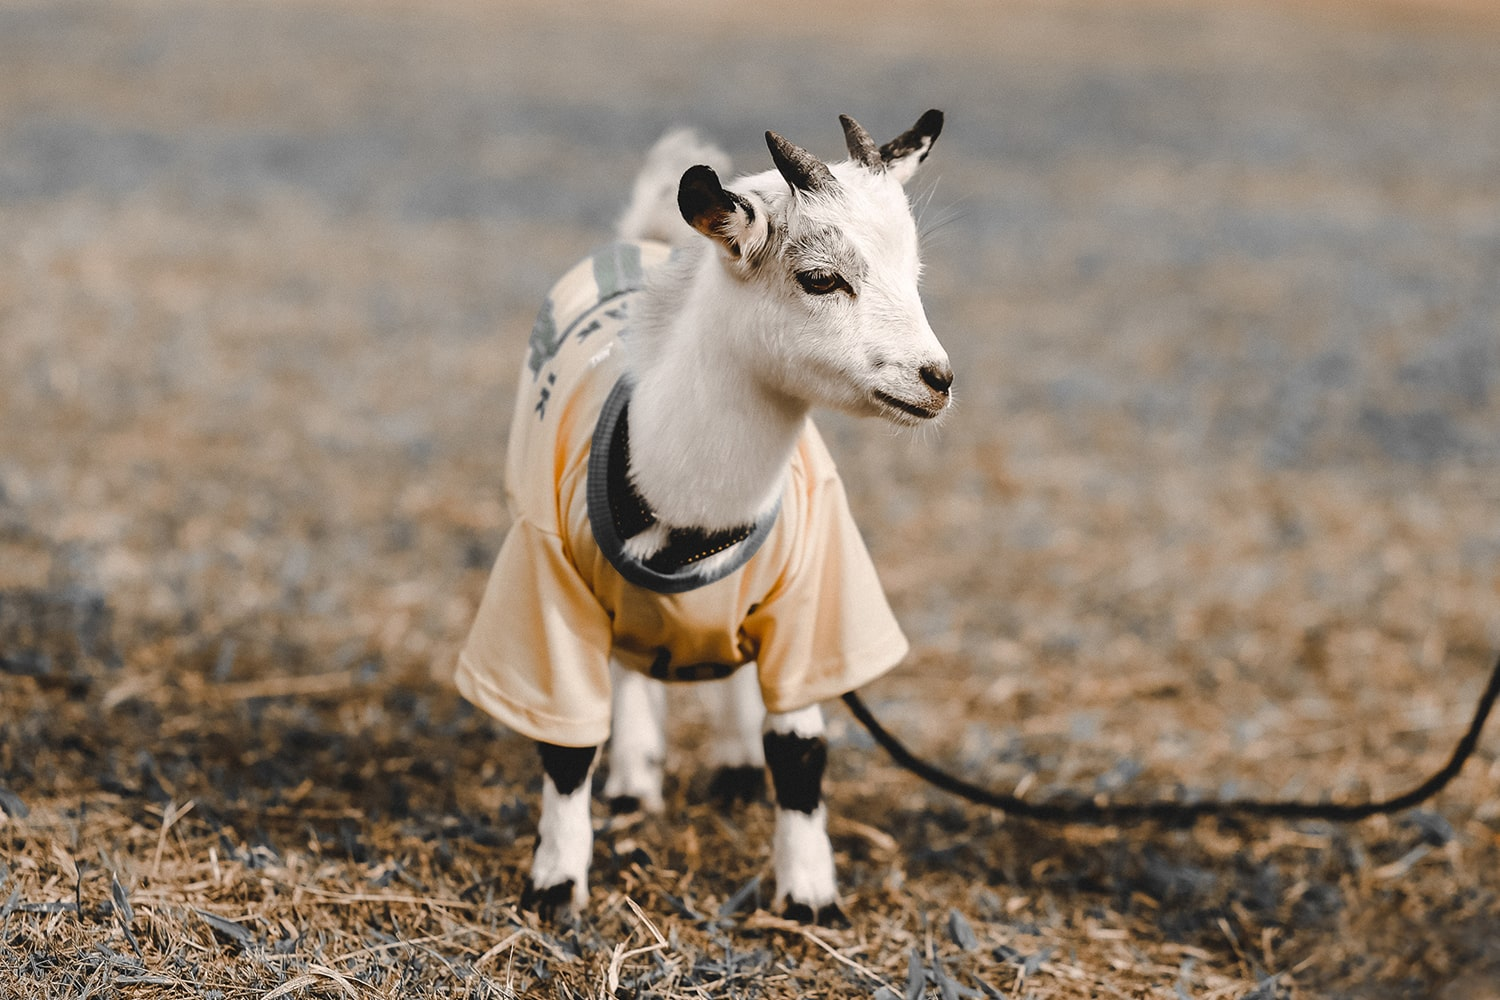 Funny Horoscopes - baby goat for Capricorn